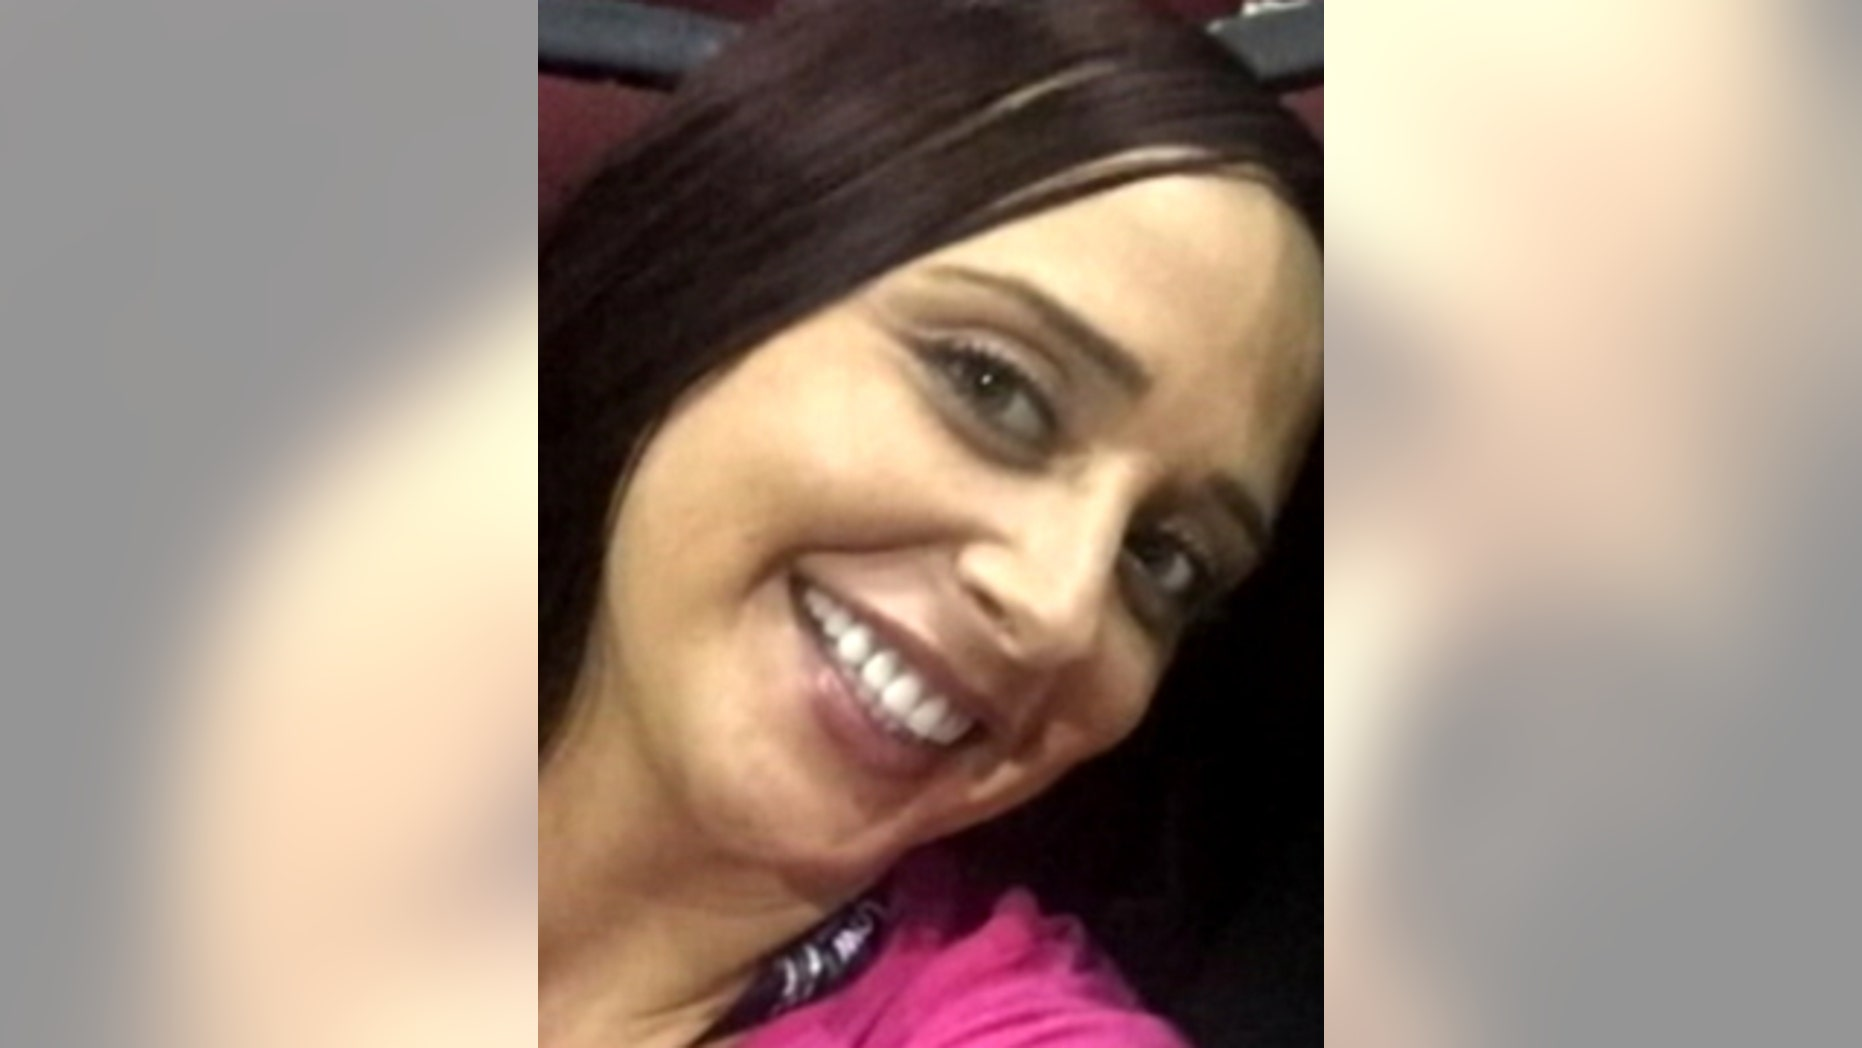 This undated photo shows 33-year-old Samantha Broberg, missing from a Carnival cruise ship since early Friday.